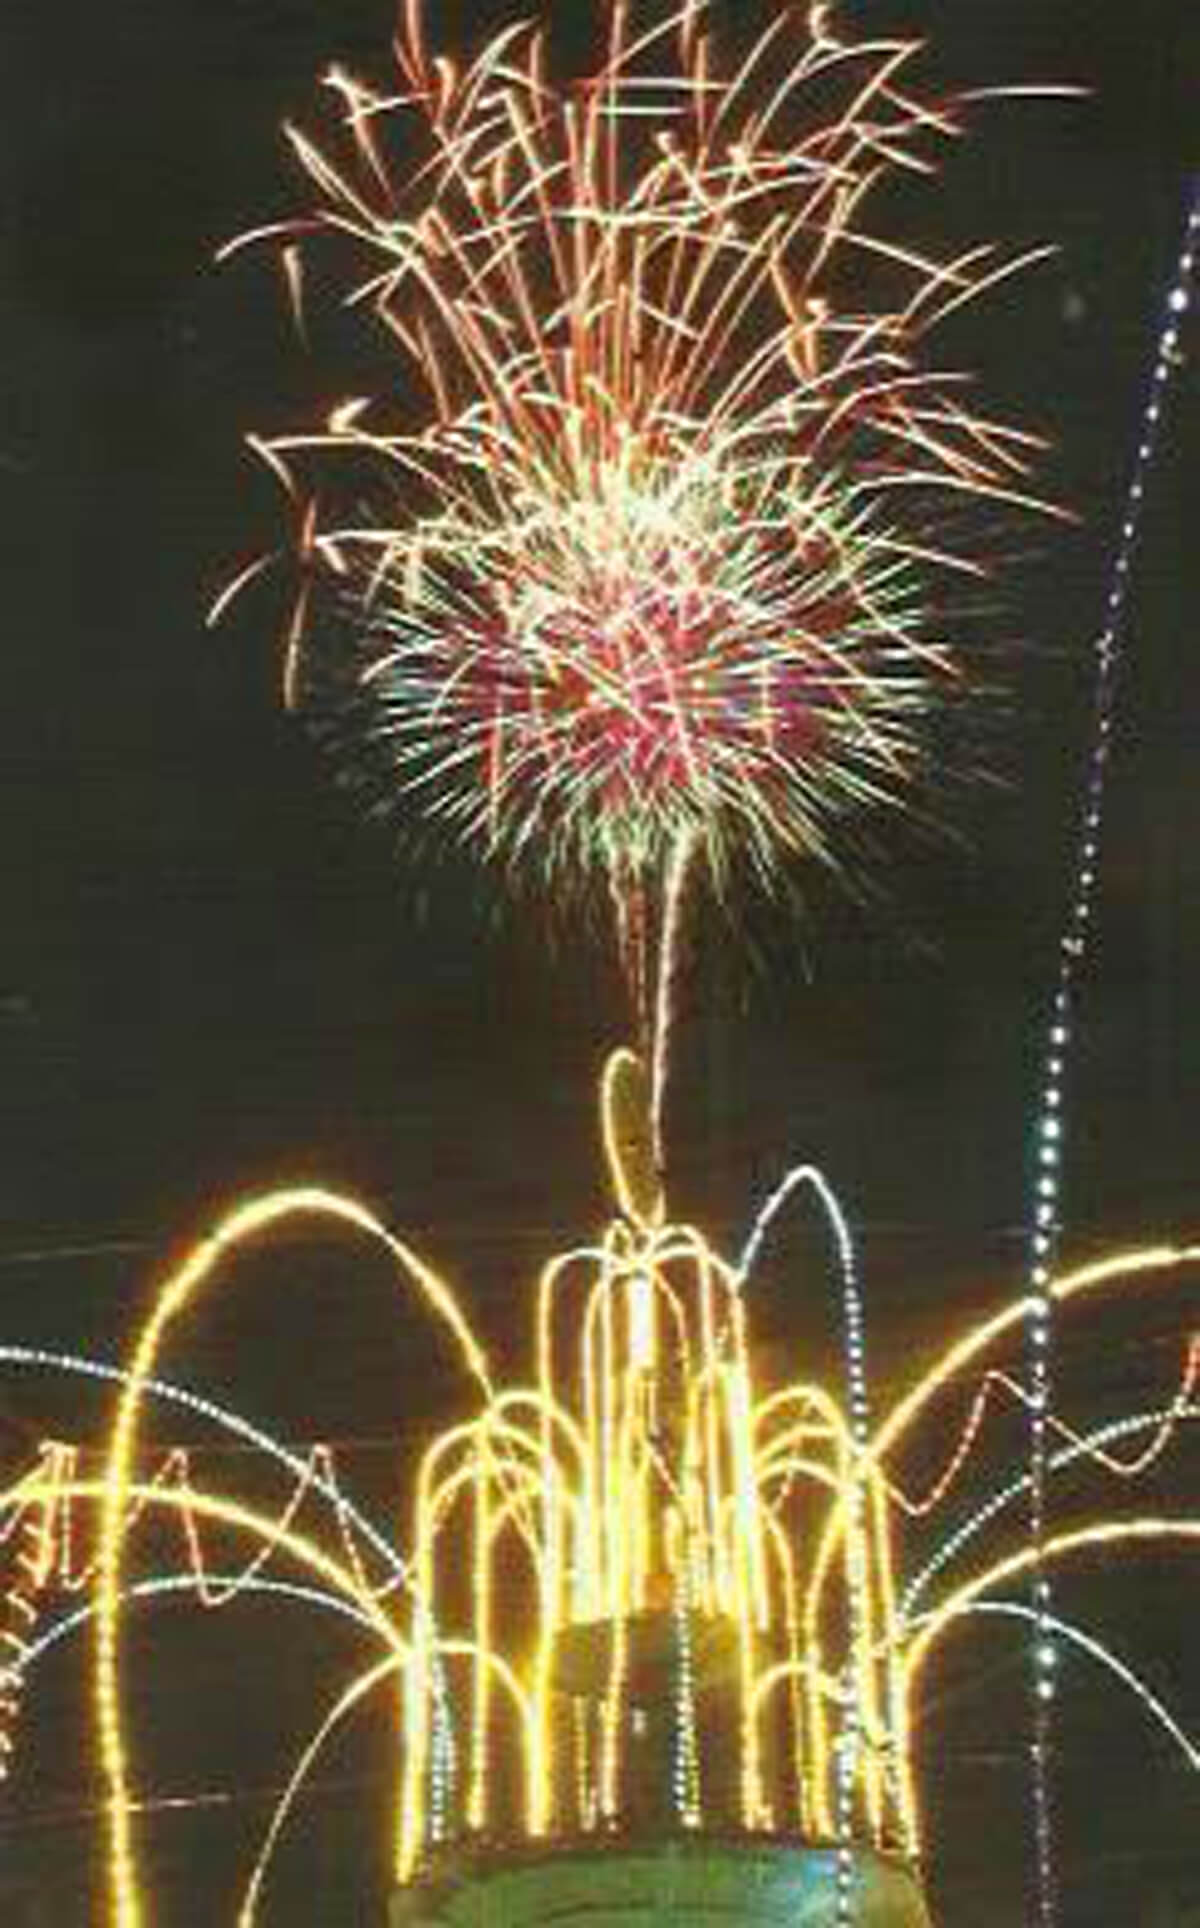 Firework display from St. Lucia's Festival of Lights